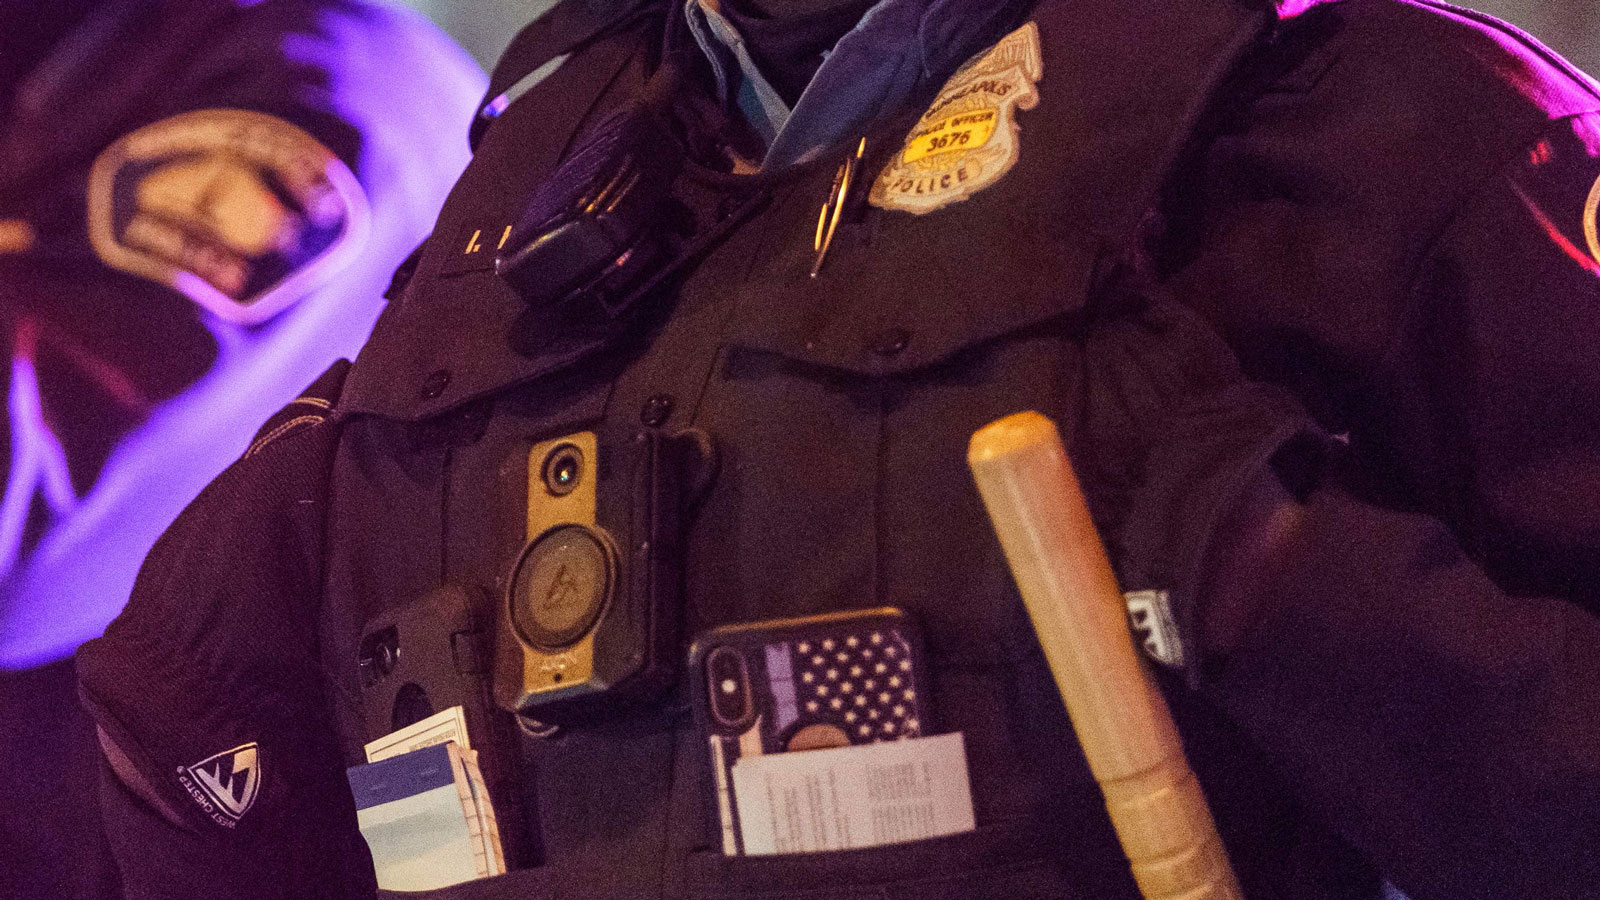 Minneapolis police still use force on Black people at disproportionate rate